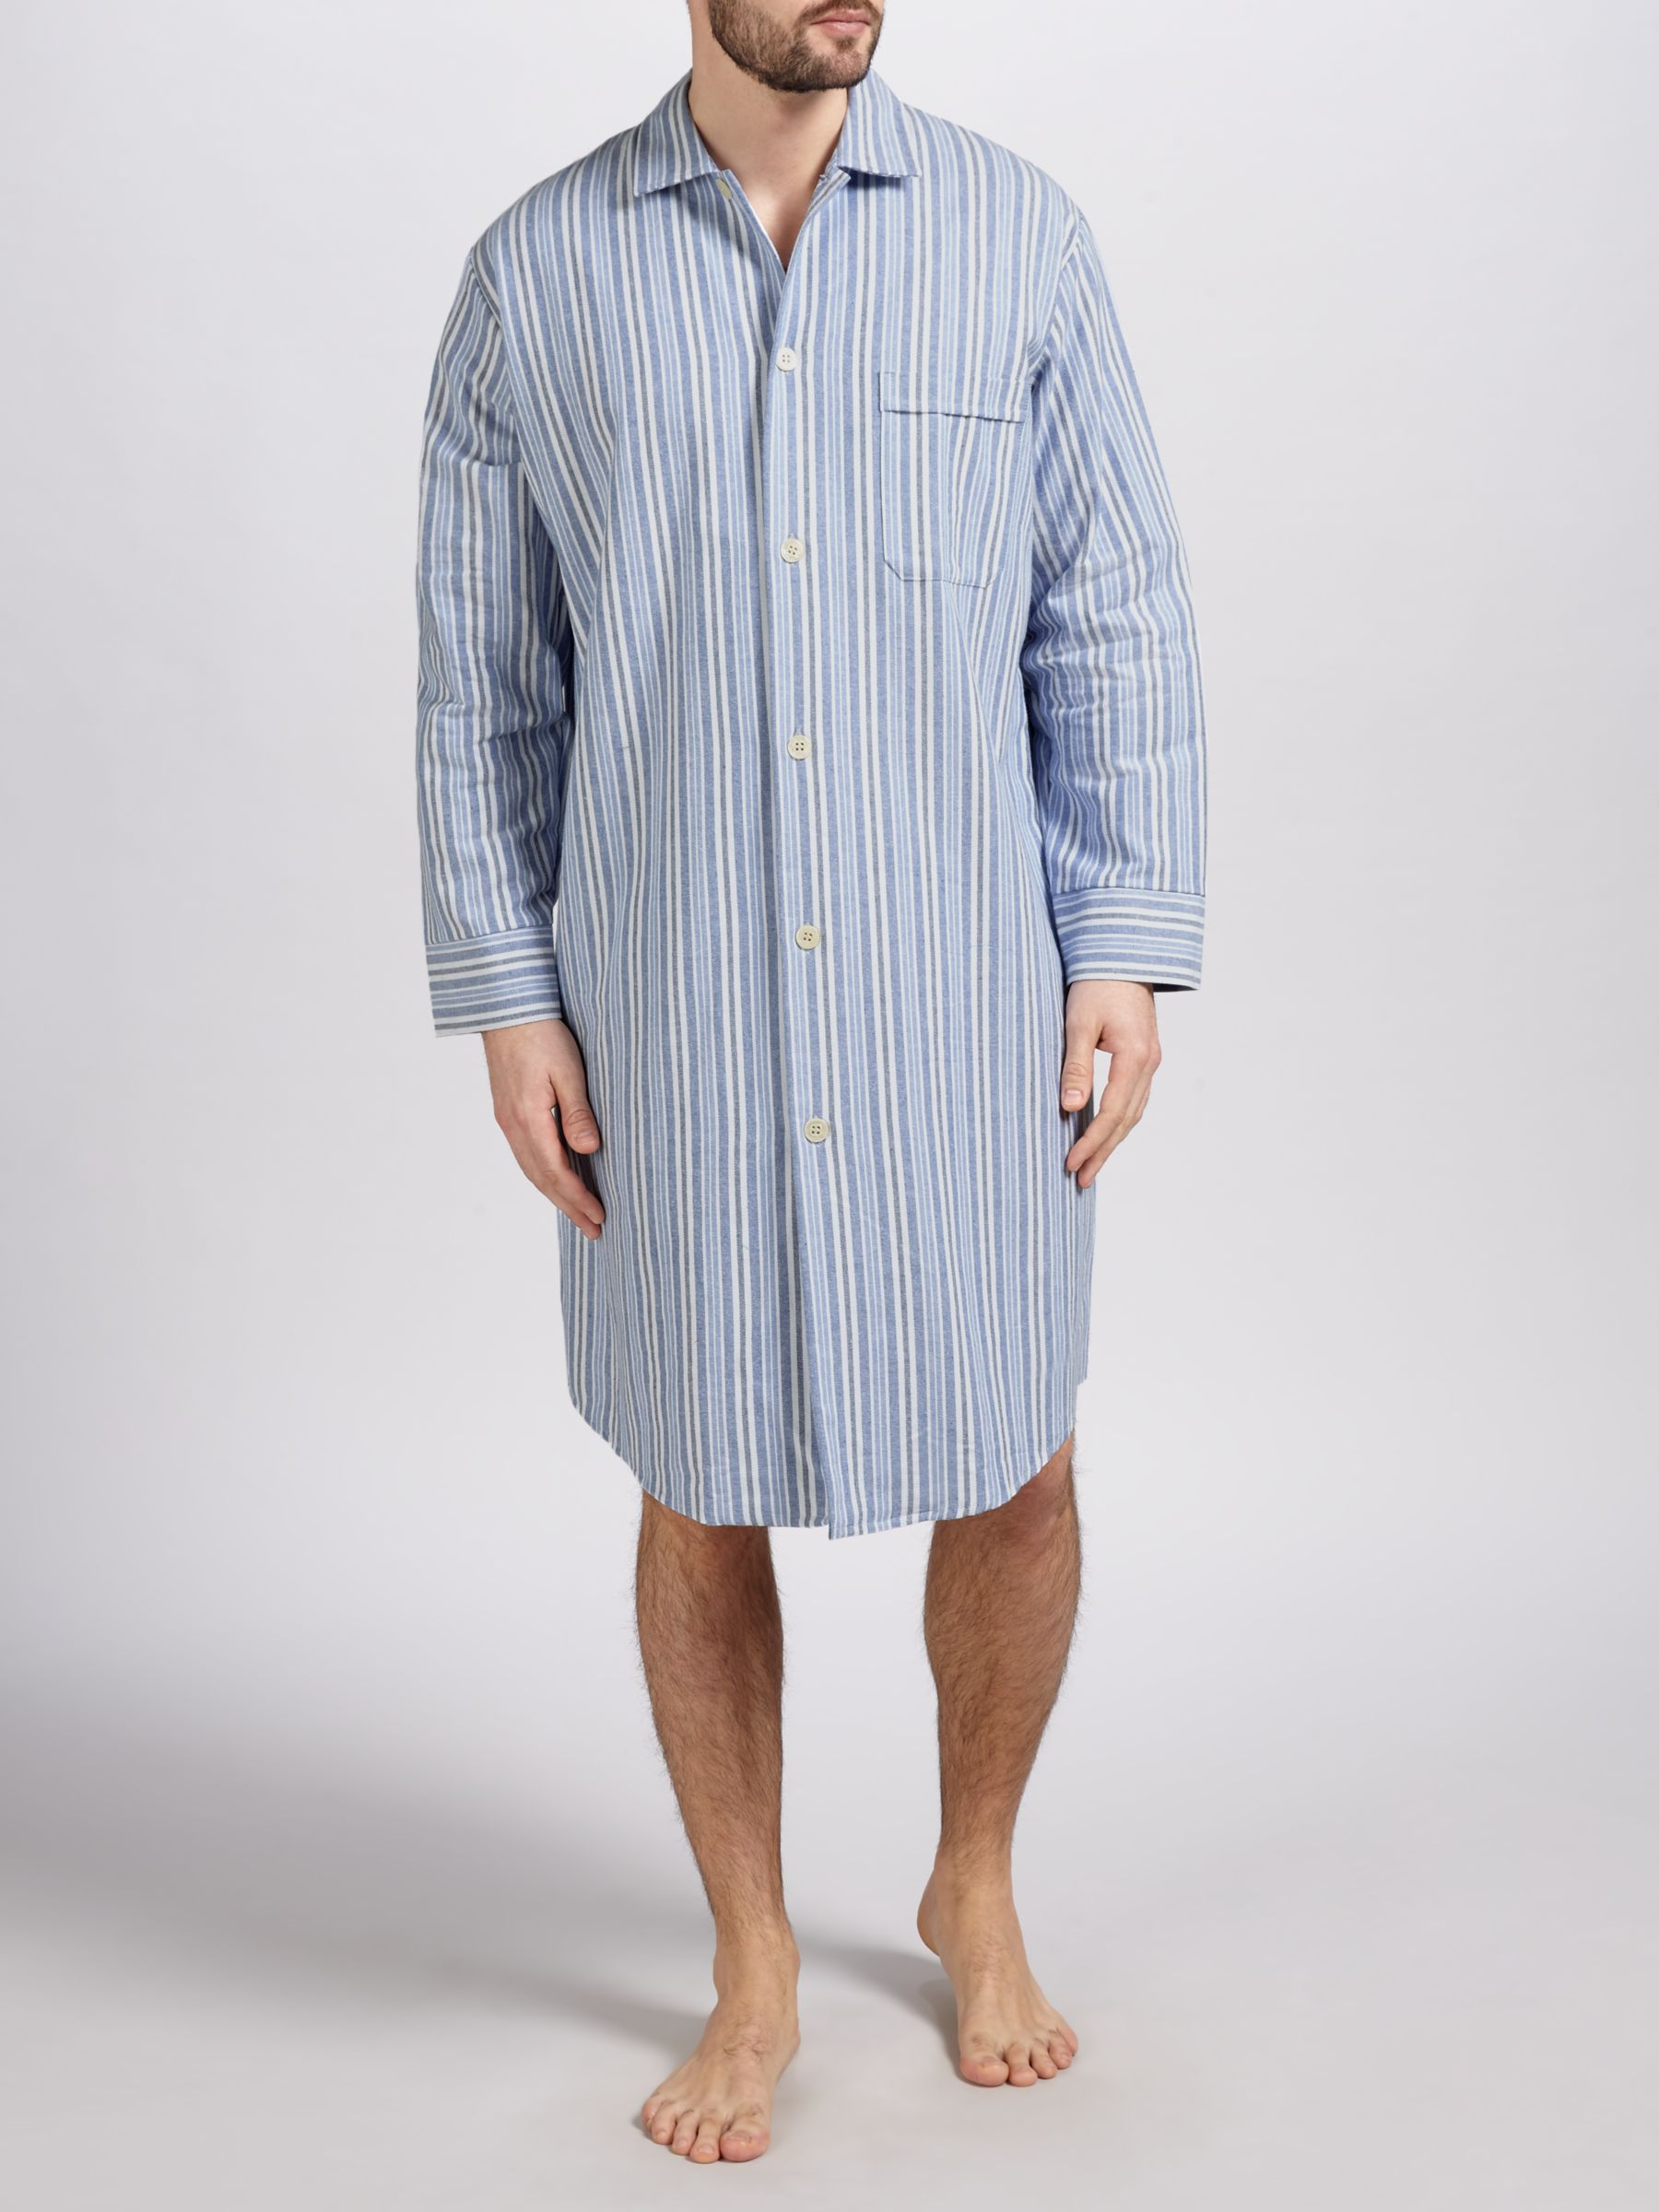 Derek Rose Derek Rose Brushed Cotton Stripe Nightshirt, Blue/White